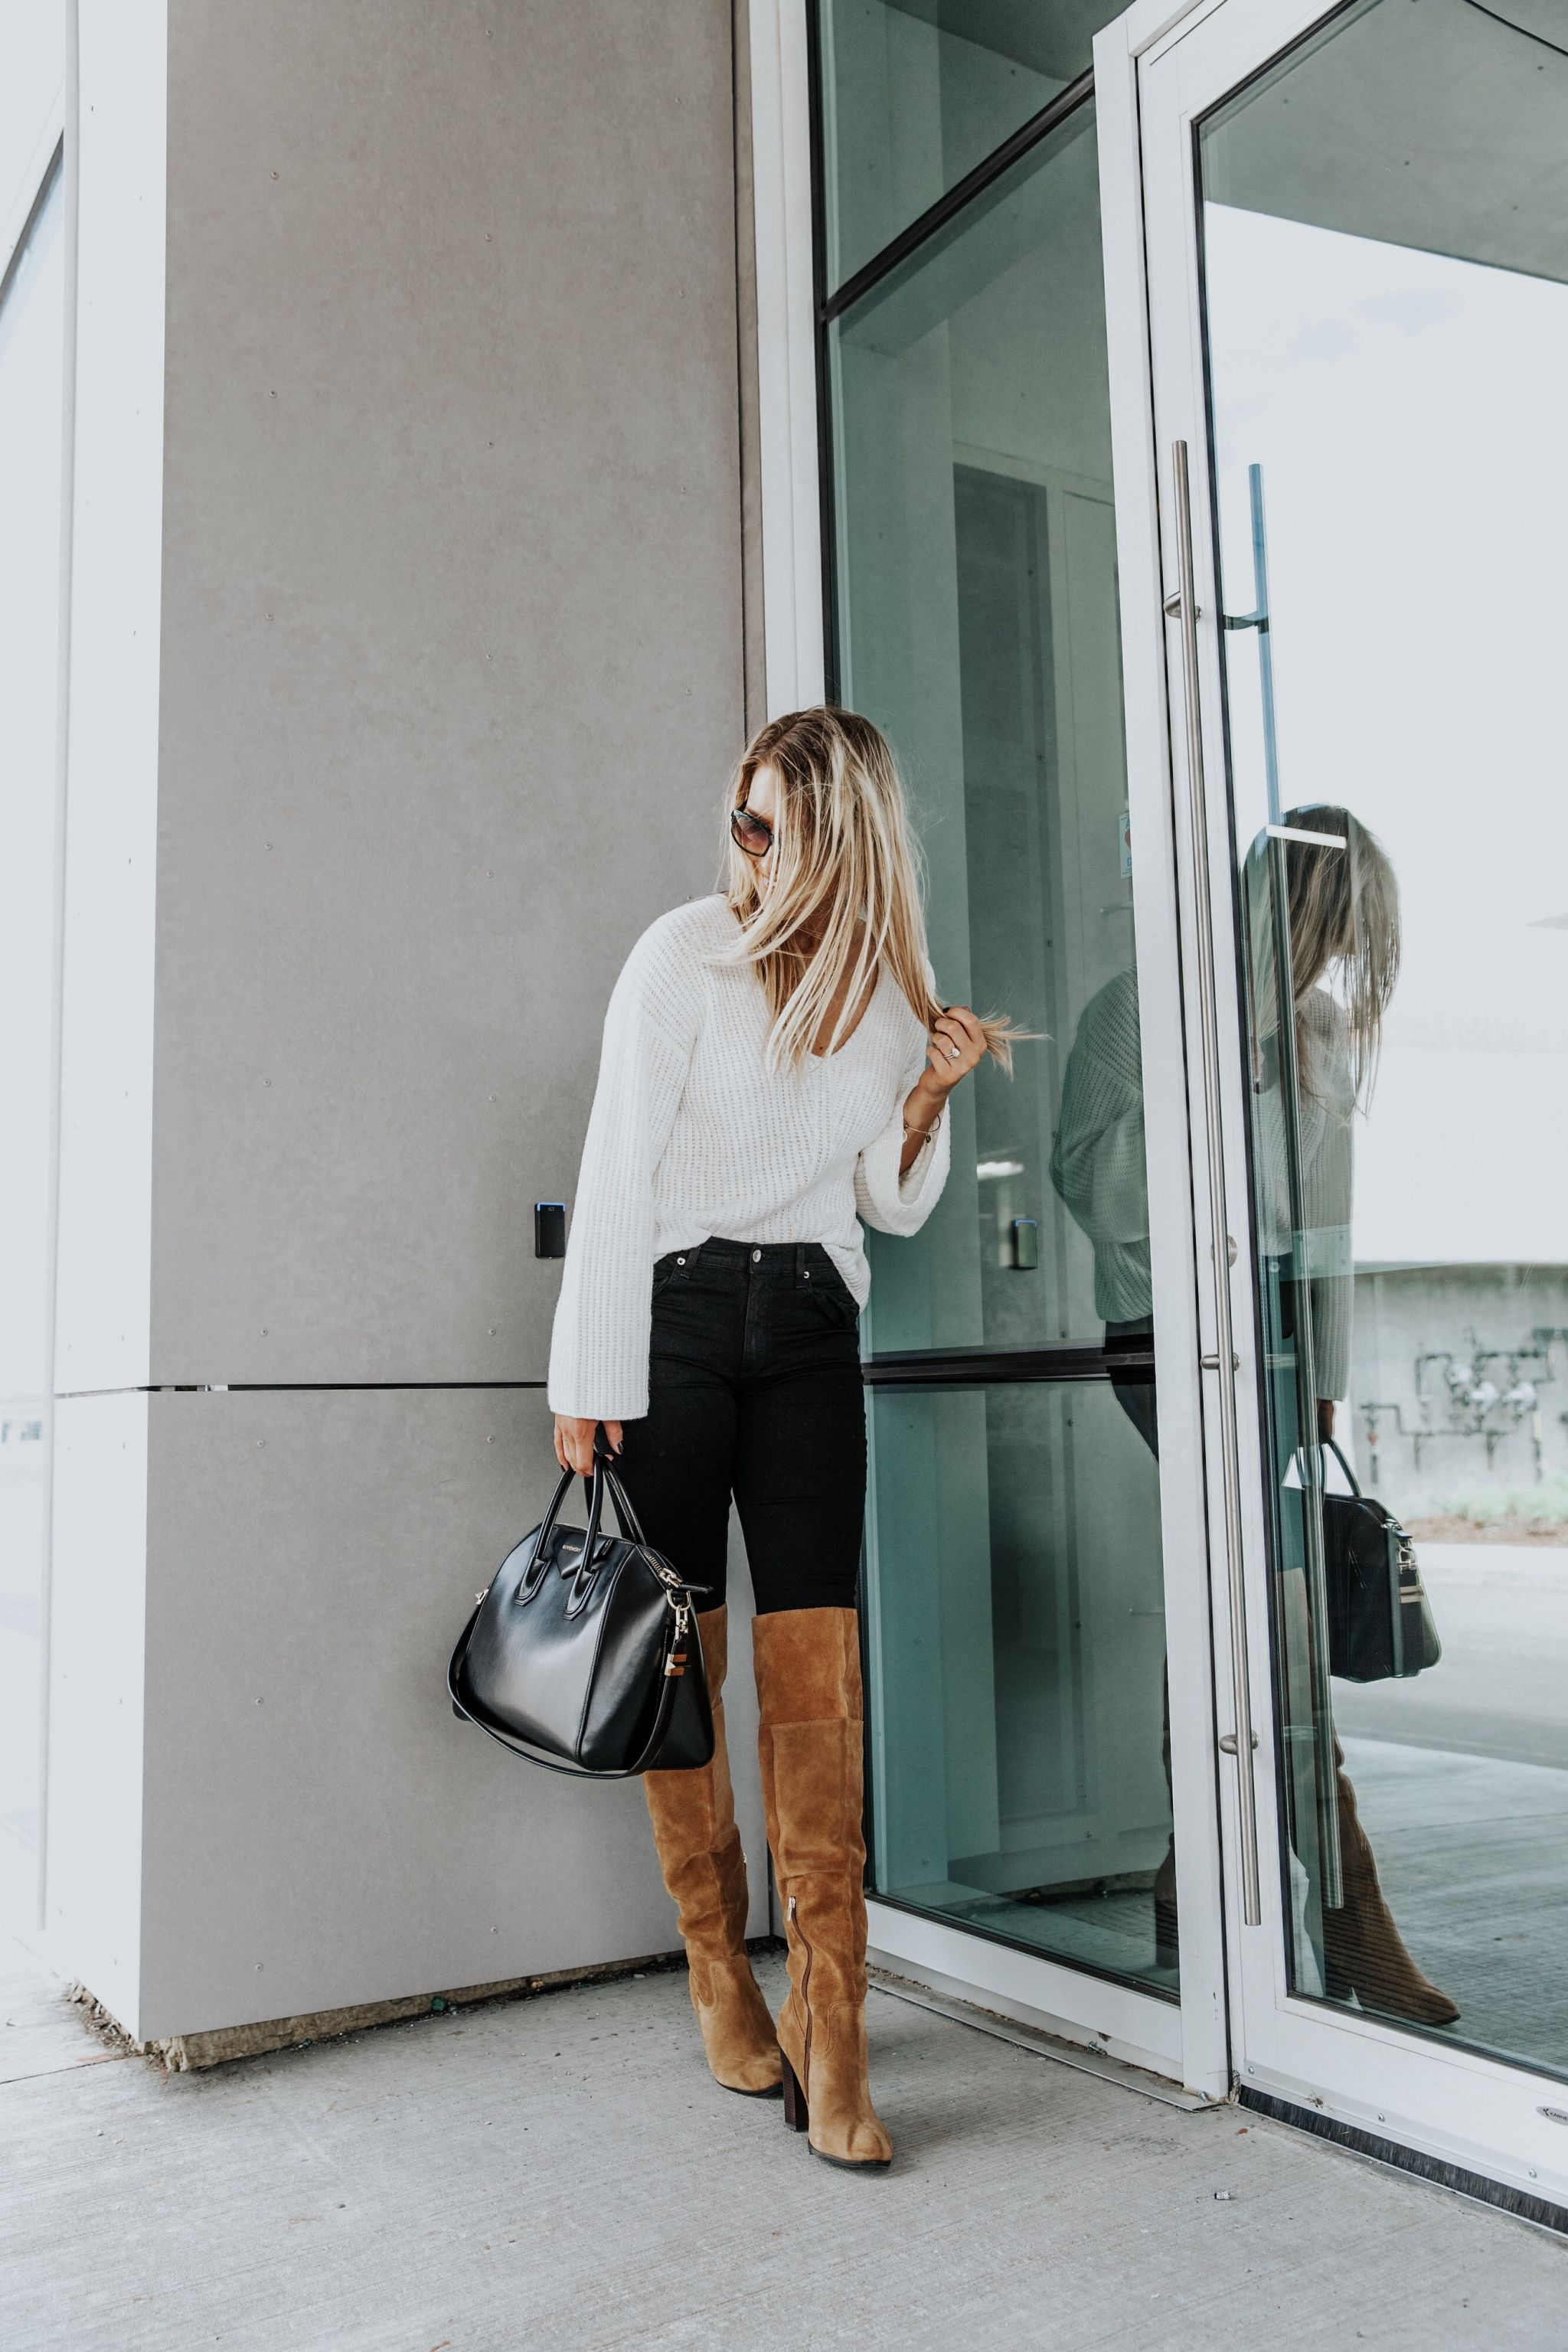 1 person, blogger in over the knee boots